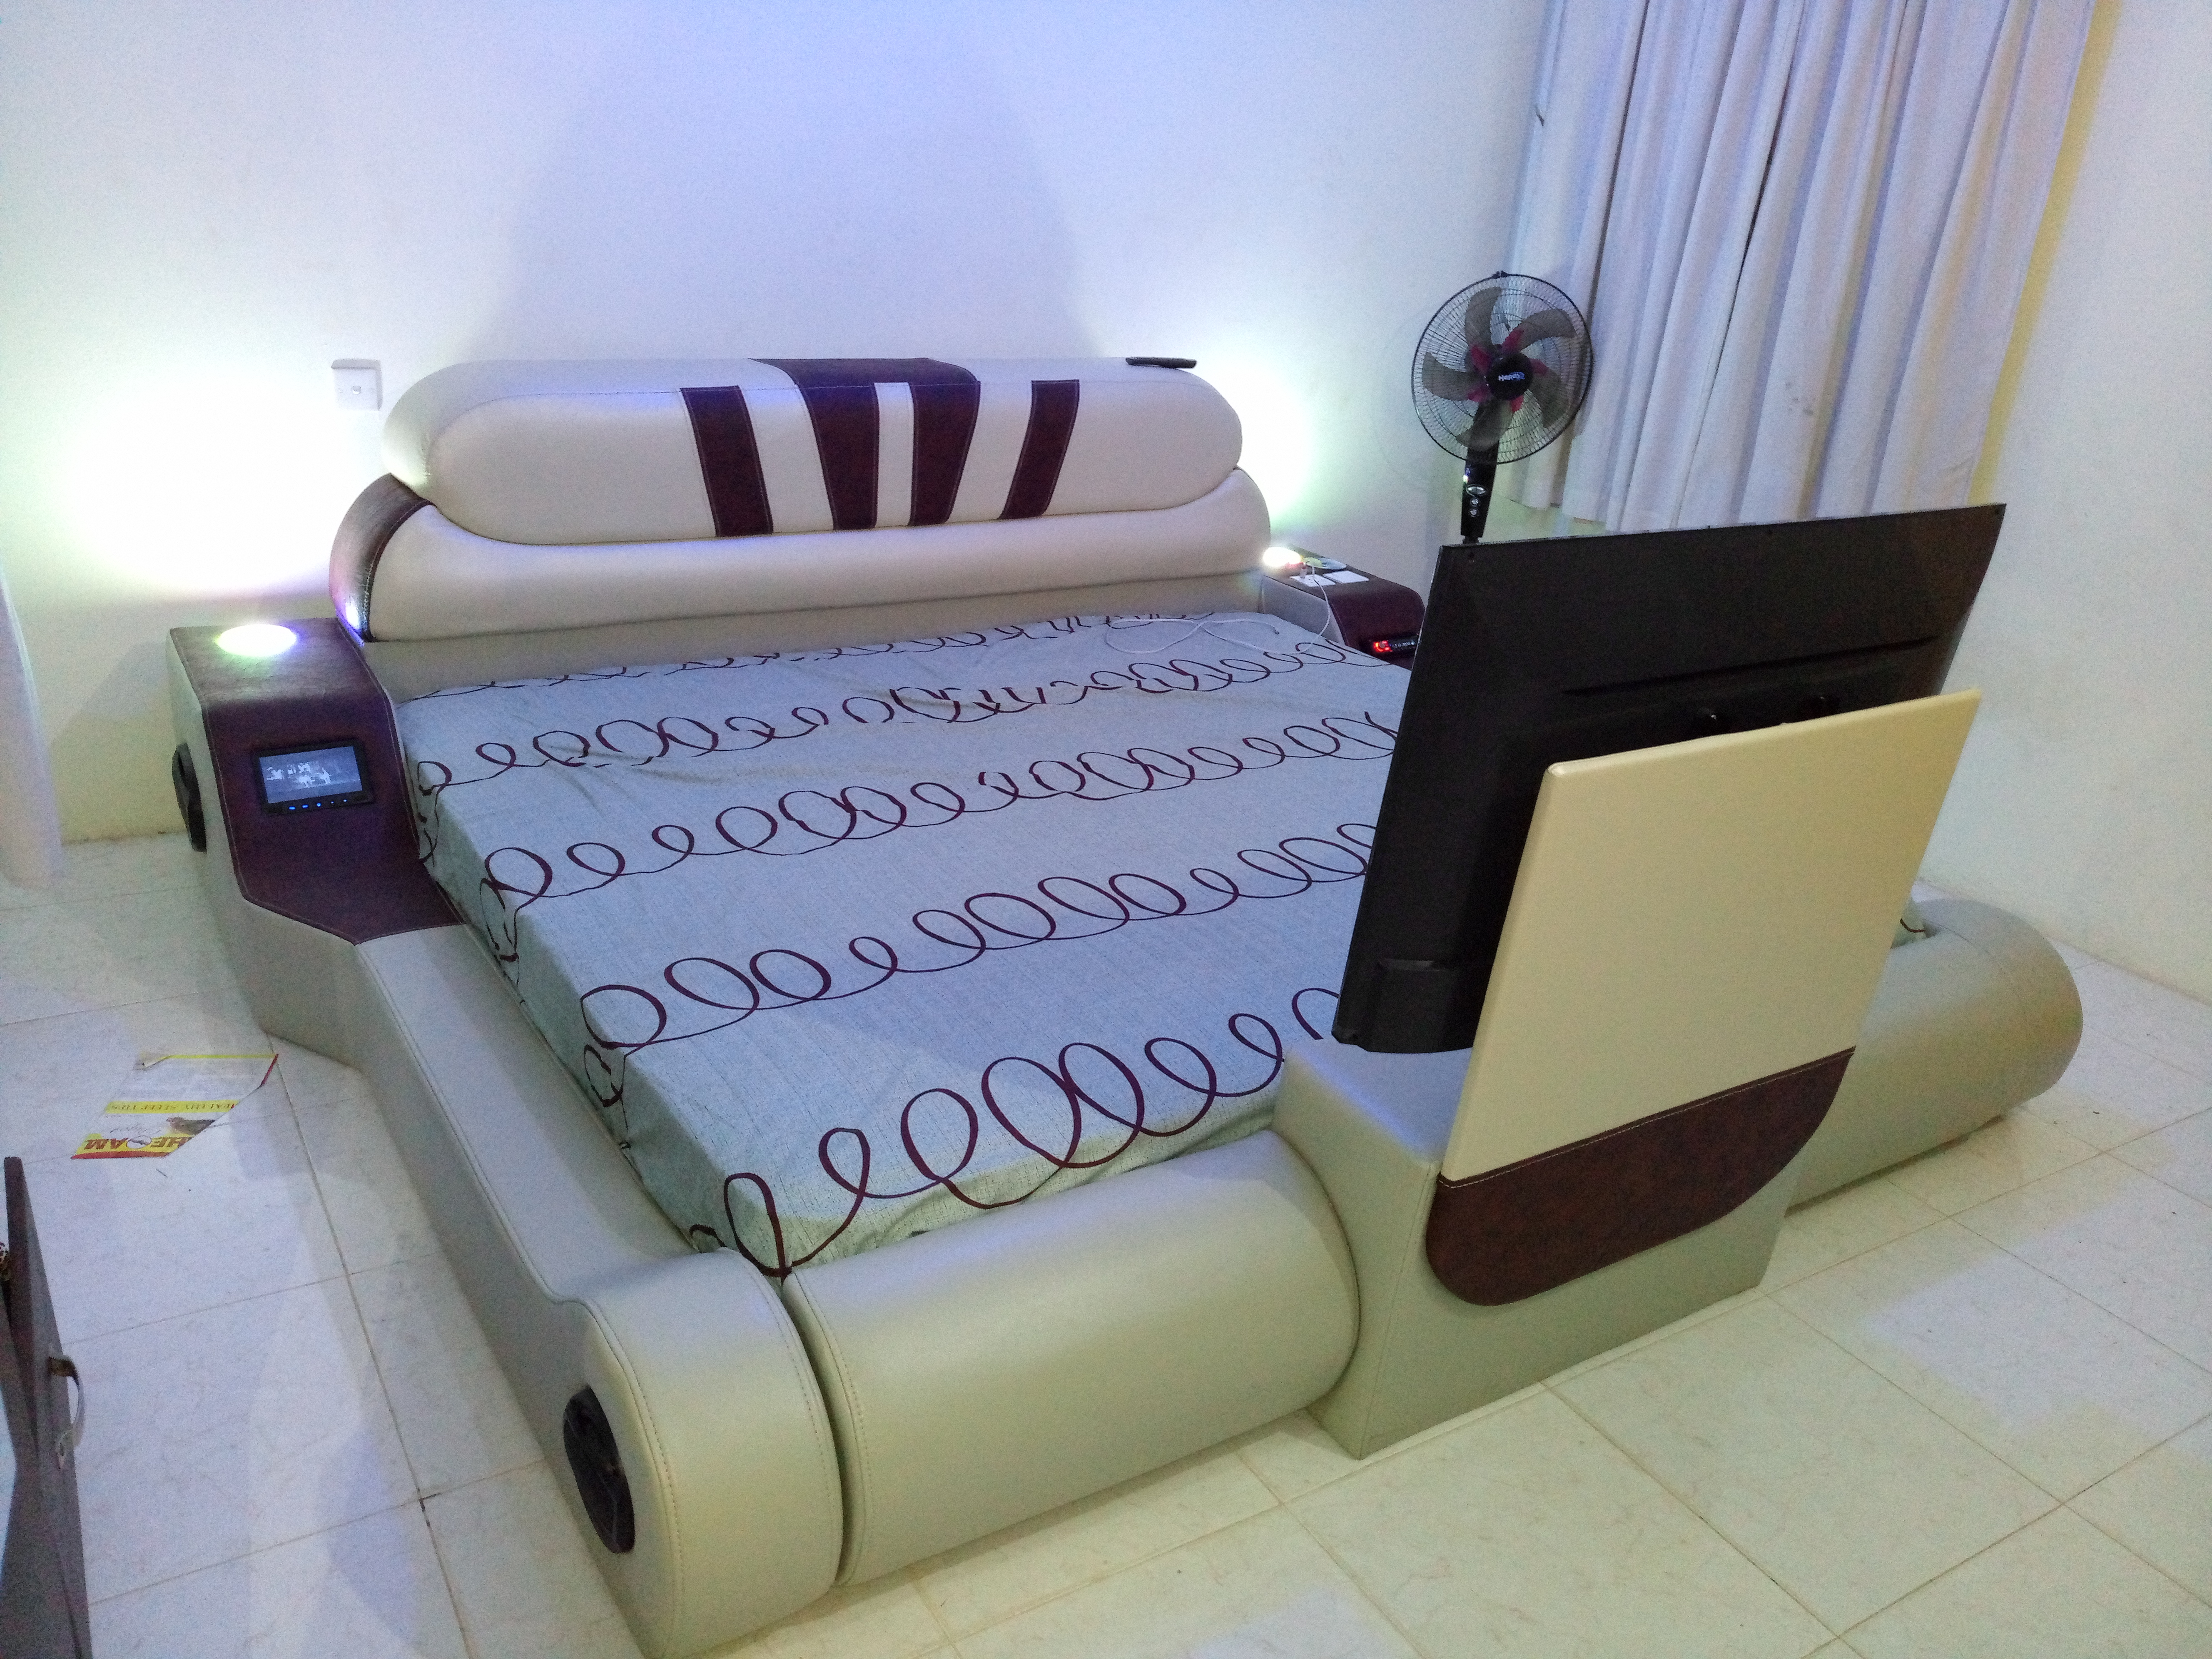 Sofa king size electronic bed powerful song system with monitor, 32 inches digital satellite television, charging system for 2 phones, you can charge your laptop, lighting system, including mattress 